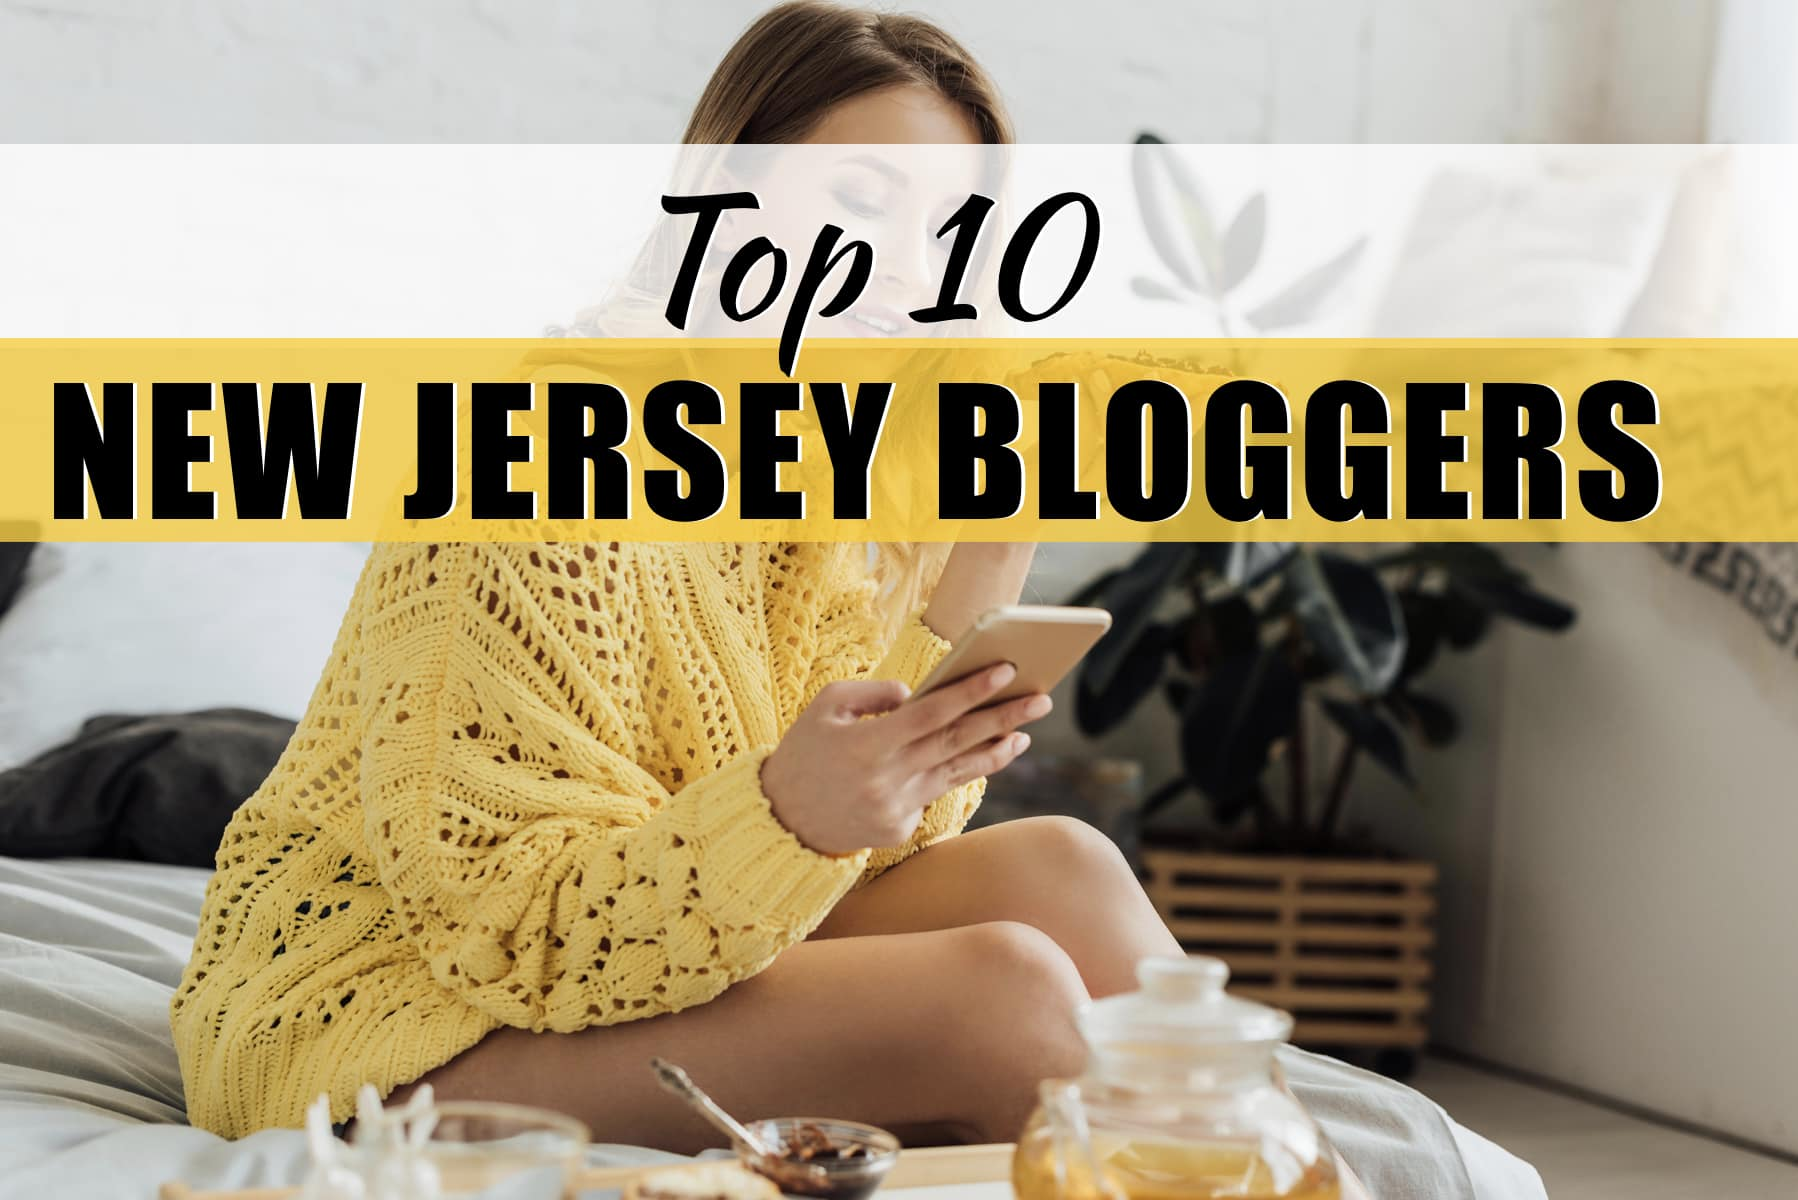 Top 10 New Jersey Bloggers Absolutely Killing It in 2020!